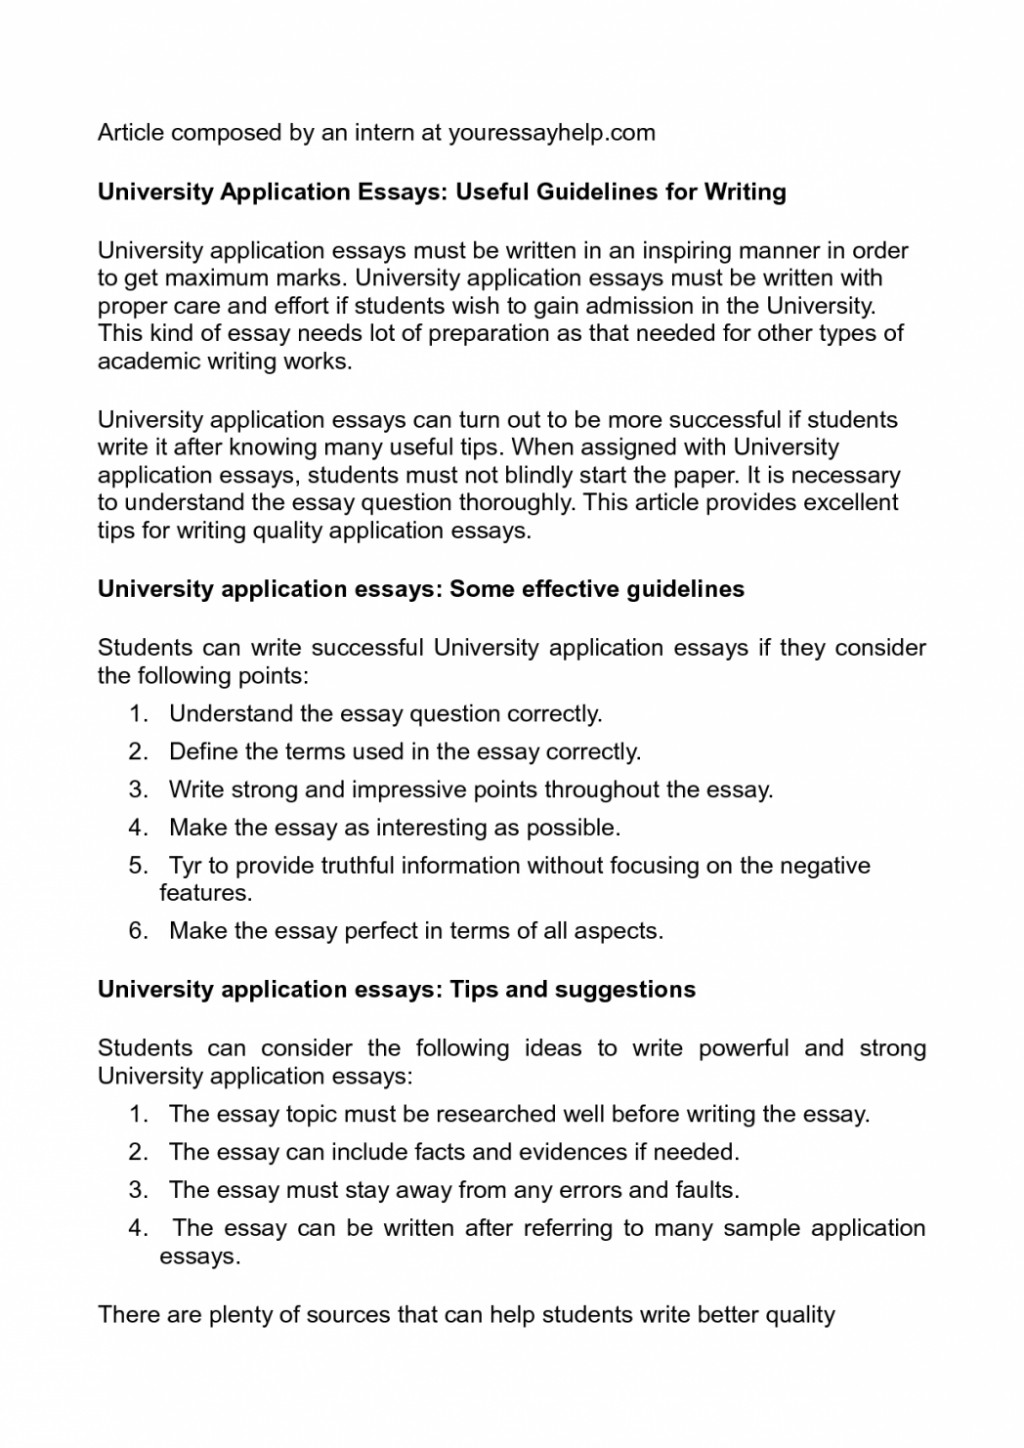 005 Define Argumentative Essay Top Writing Site For University Definition Argument Topics 1048x1482 Fantastic Claim Pdf Large